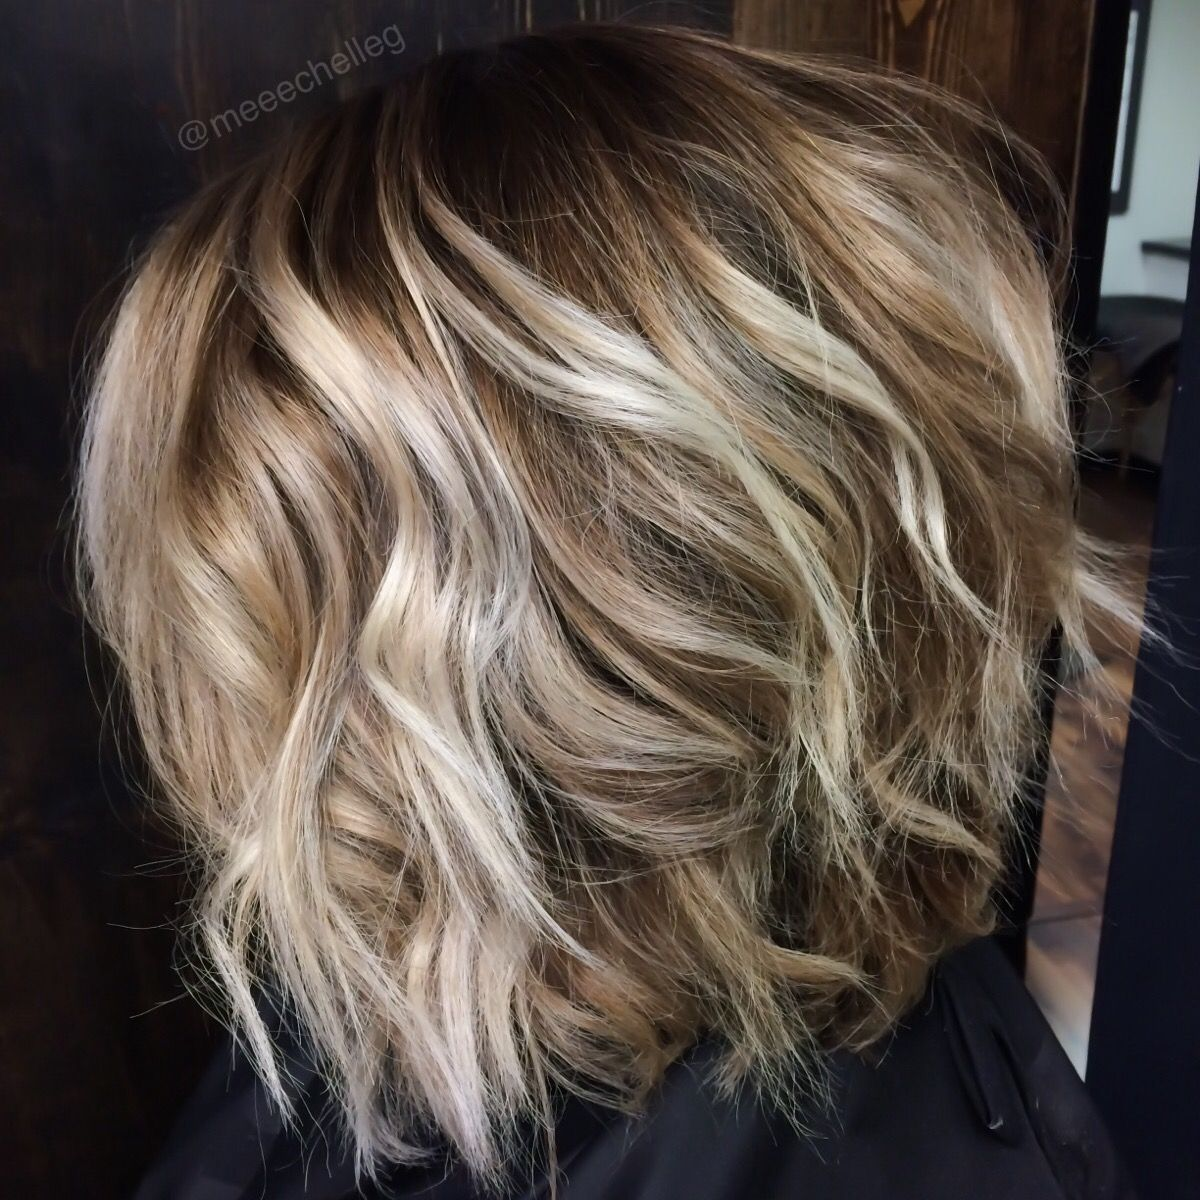 Image Result For Highlights And Lowlights For Short Brown Hair Hair Blonde Highlights Lowlights Short Hair Highlights Blonde Lowlights